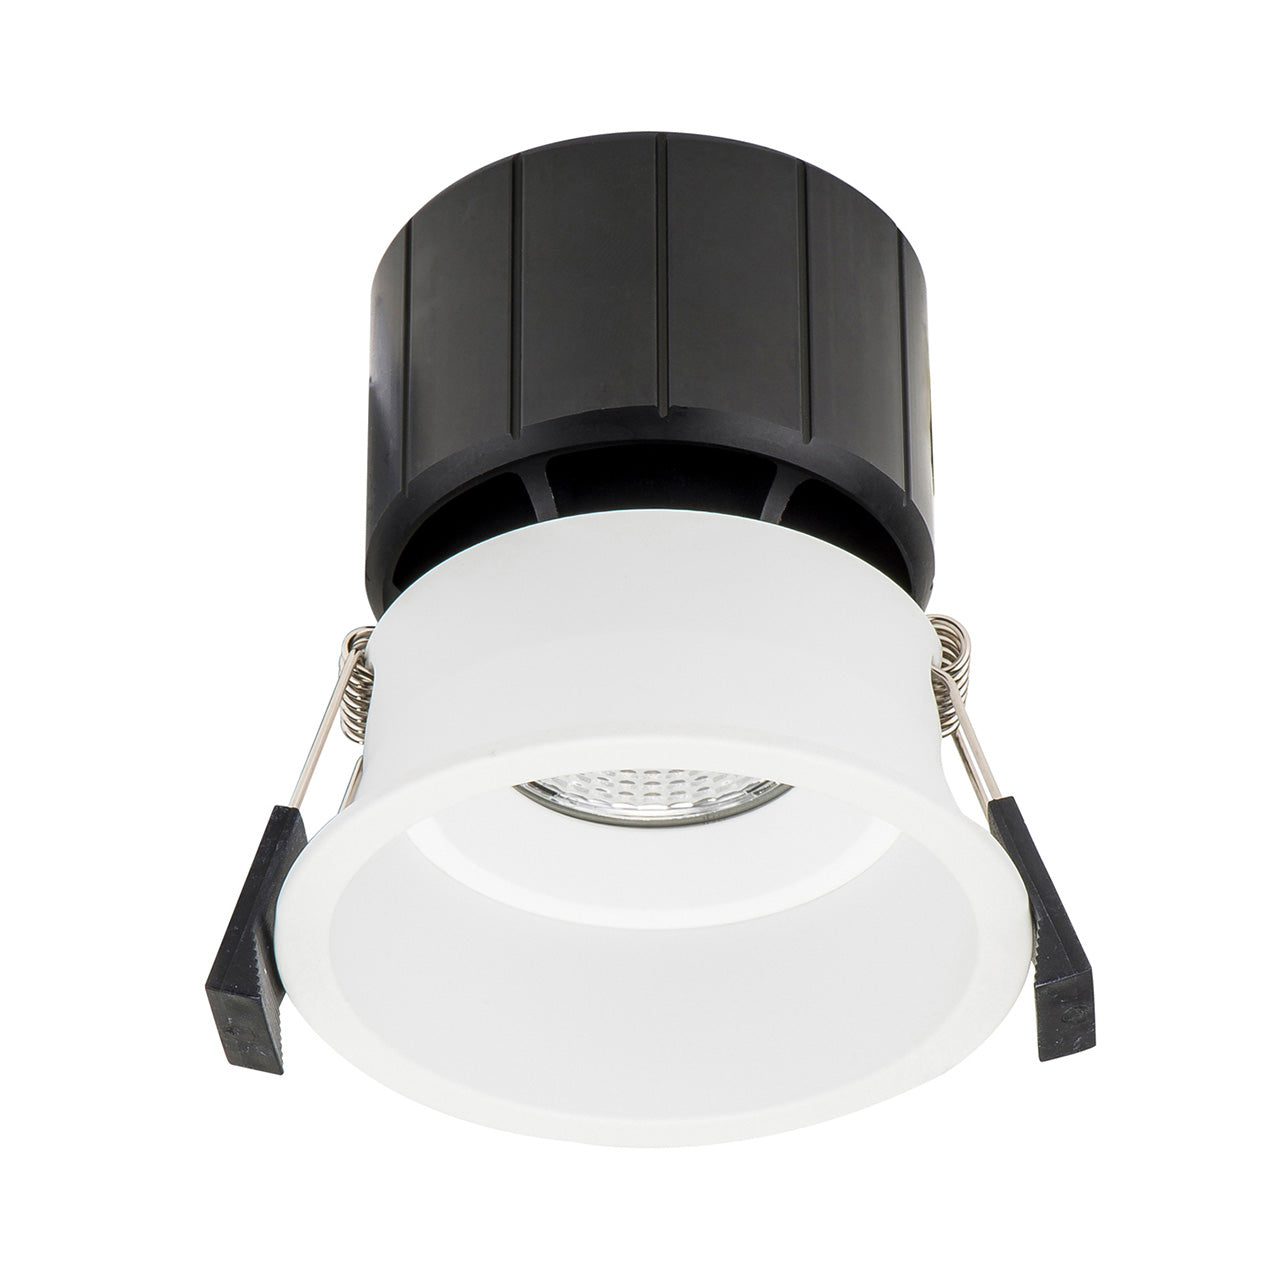 HV5513-WHT - PRIME White Fixed Deep LED Downlight